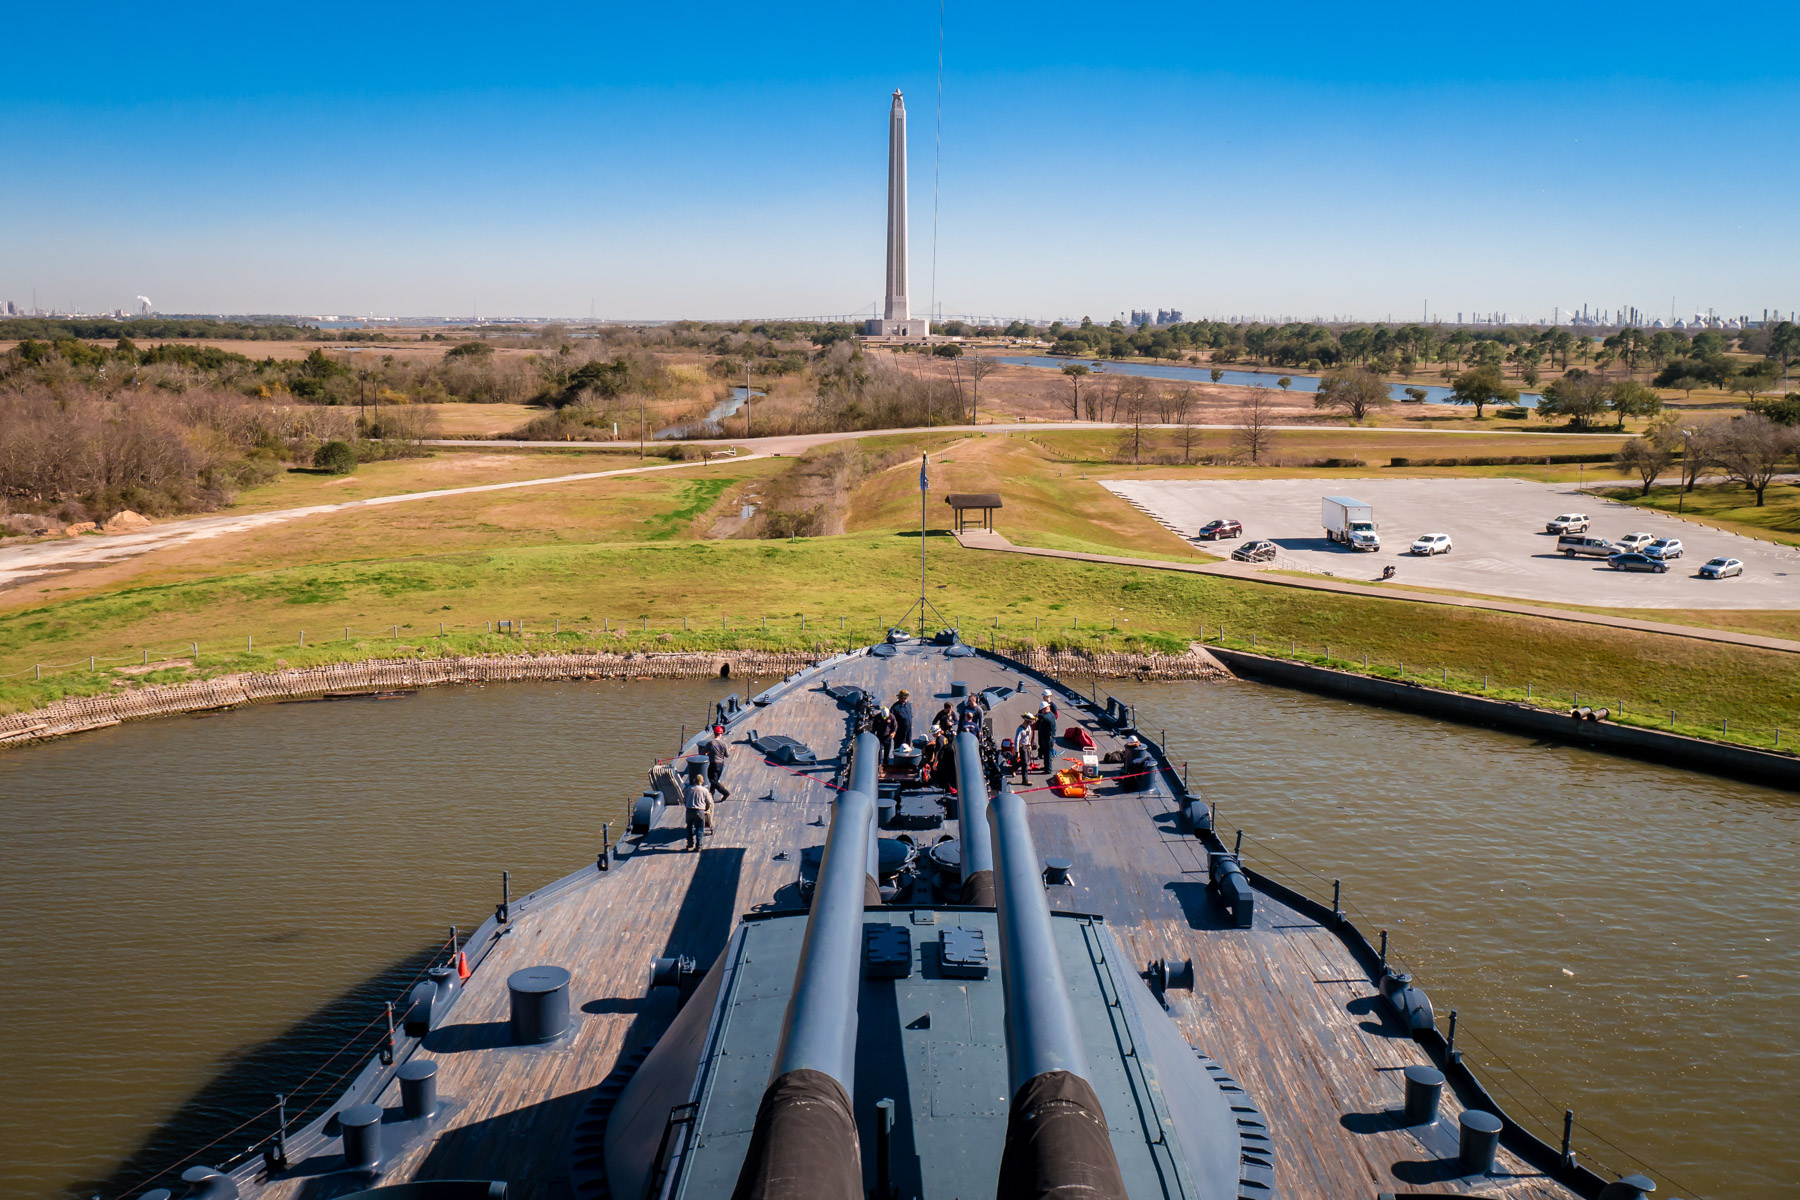 The main guns of the battleship USS Texas seem to aim at the nearby San Jacinto Monument as workers repair the wooden deck of the dreadnought, now docked as a museum ship near Houston.